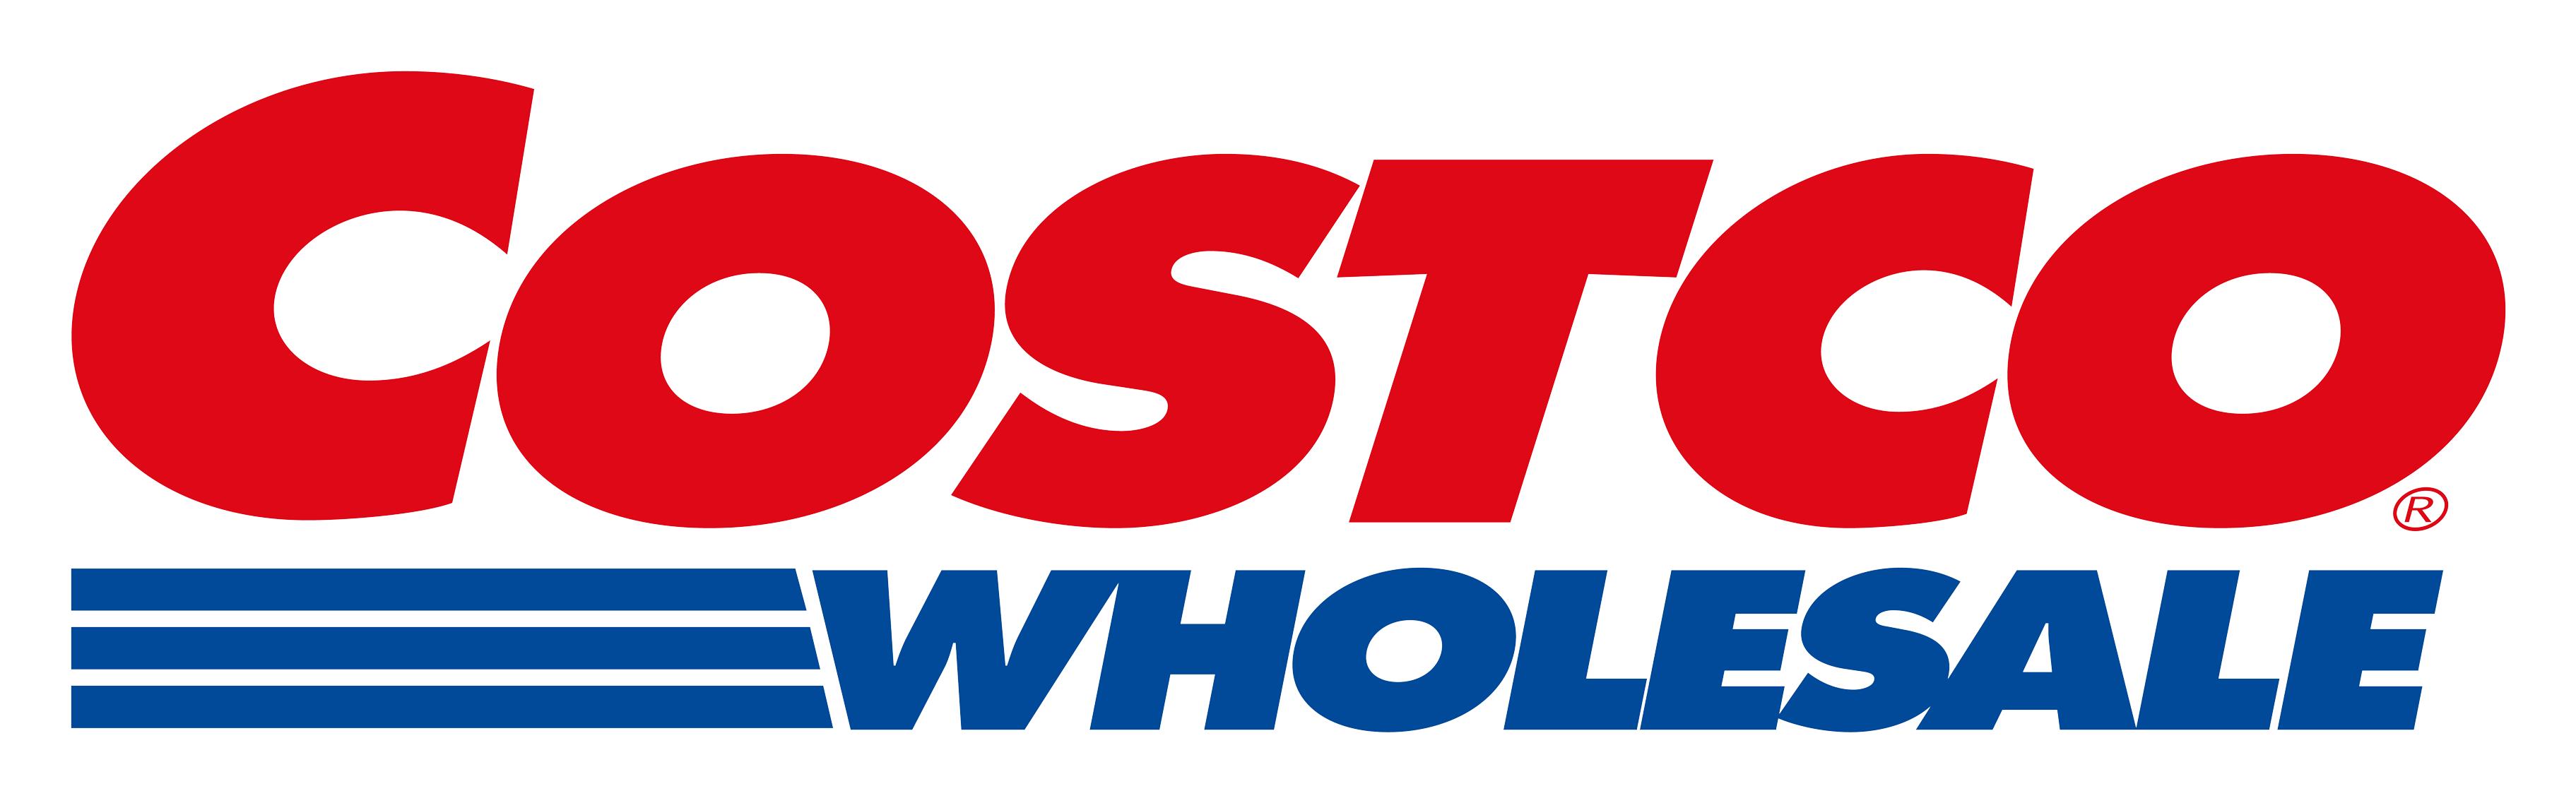 empowering marginalized youth in the outdoors costco png logo #3043